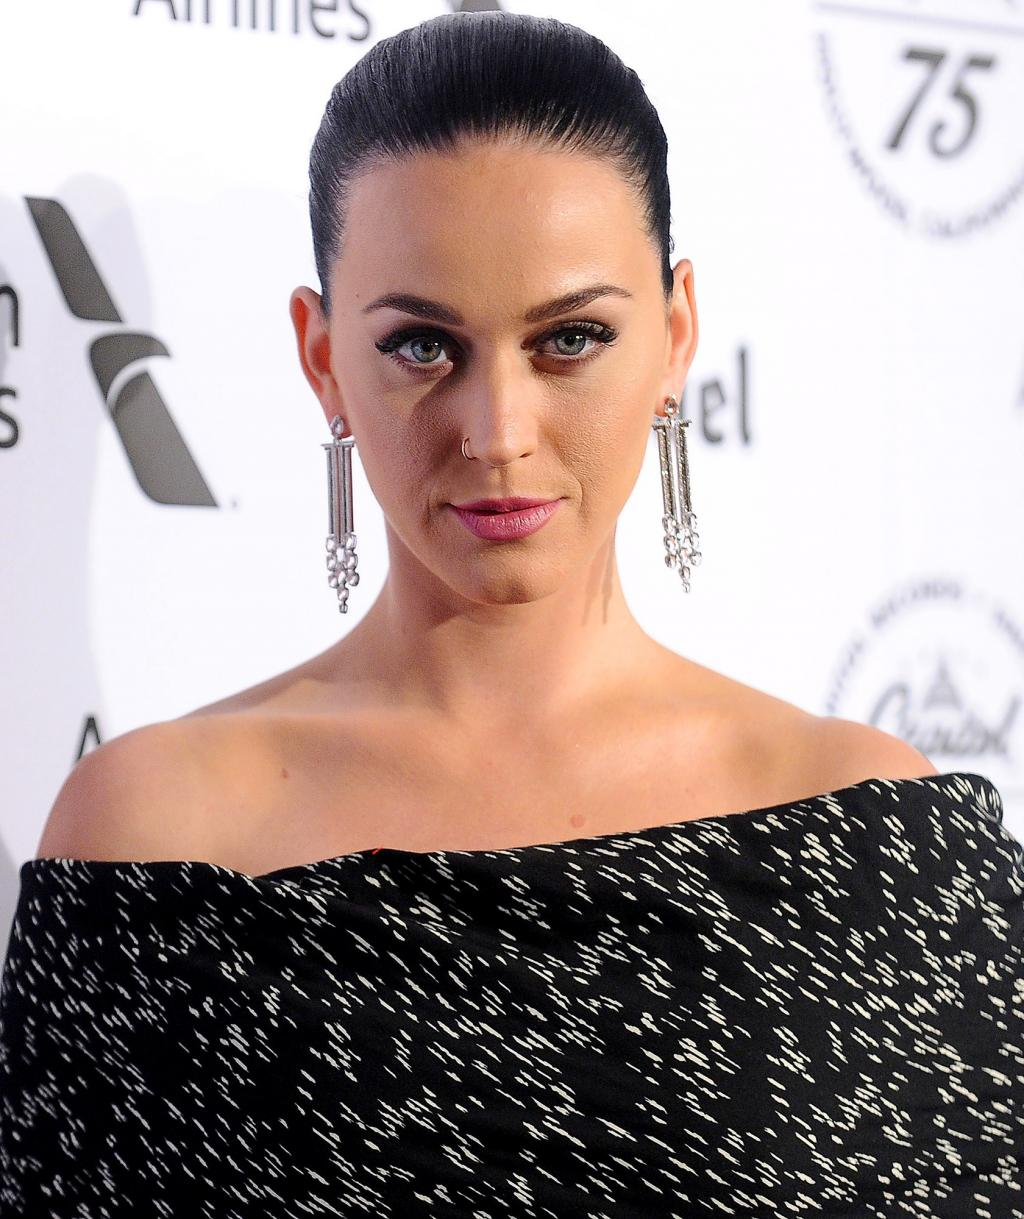 Katy Perry Produces PSA About Japanese-American Internment